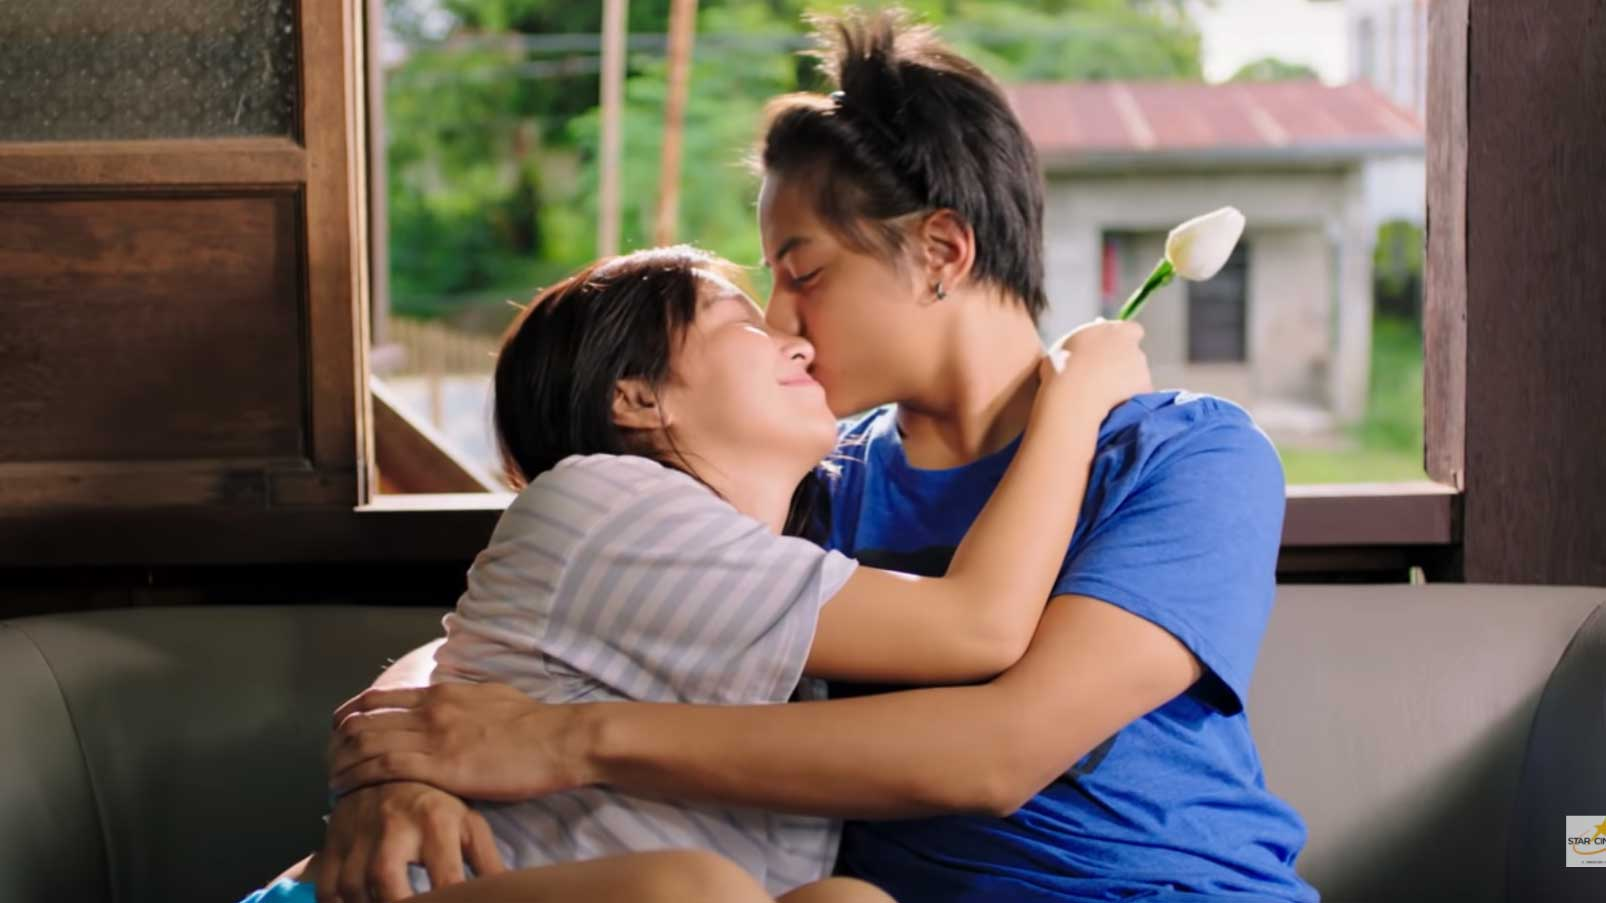 Kathniel kissing scene shes dating the gangster full